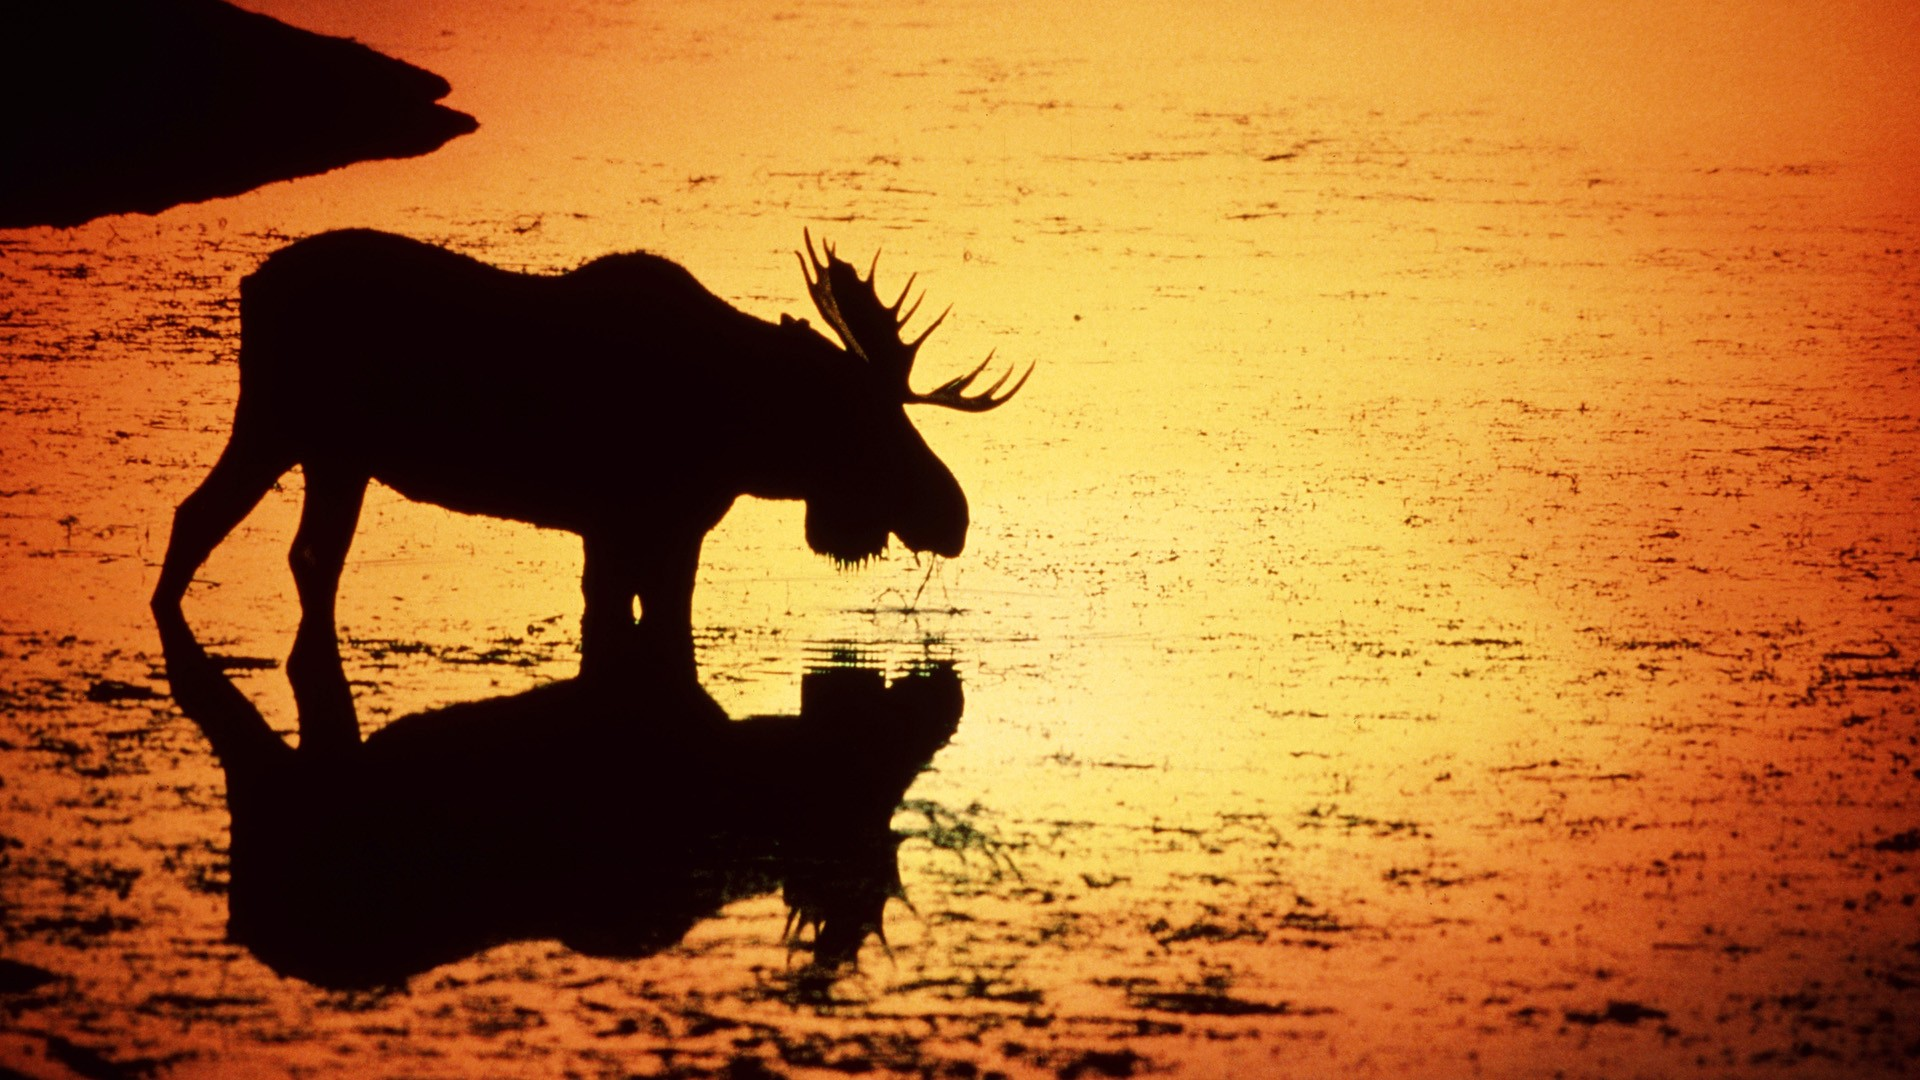 moose hd wallpaper - photo #21